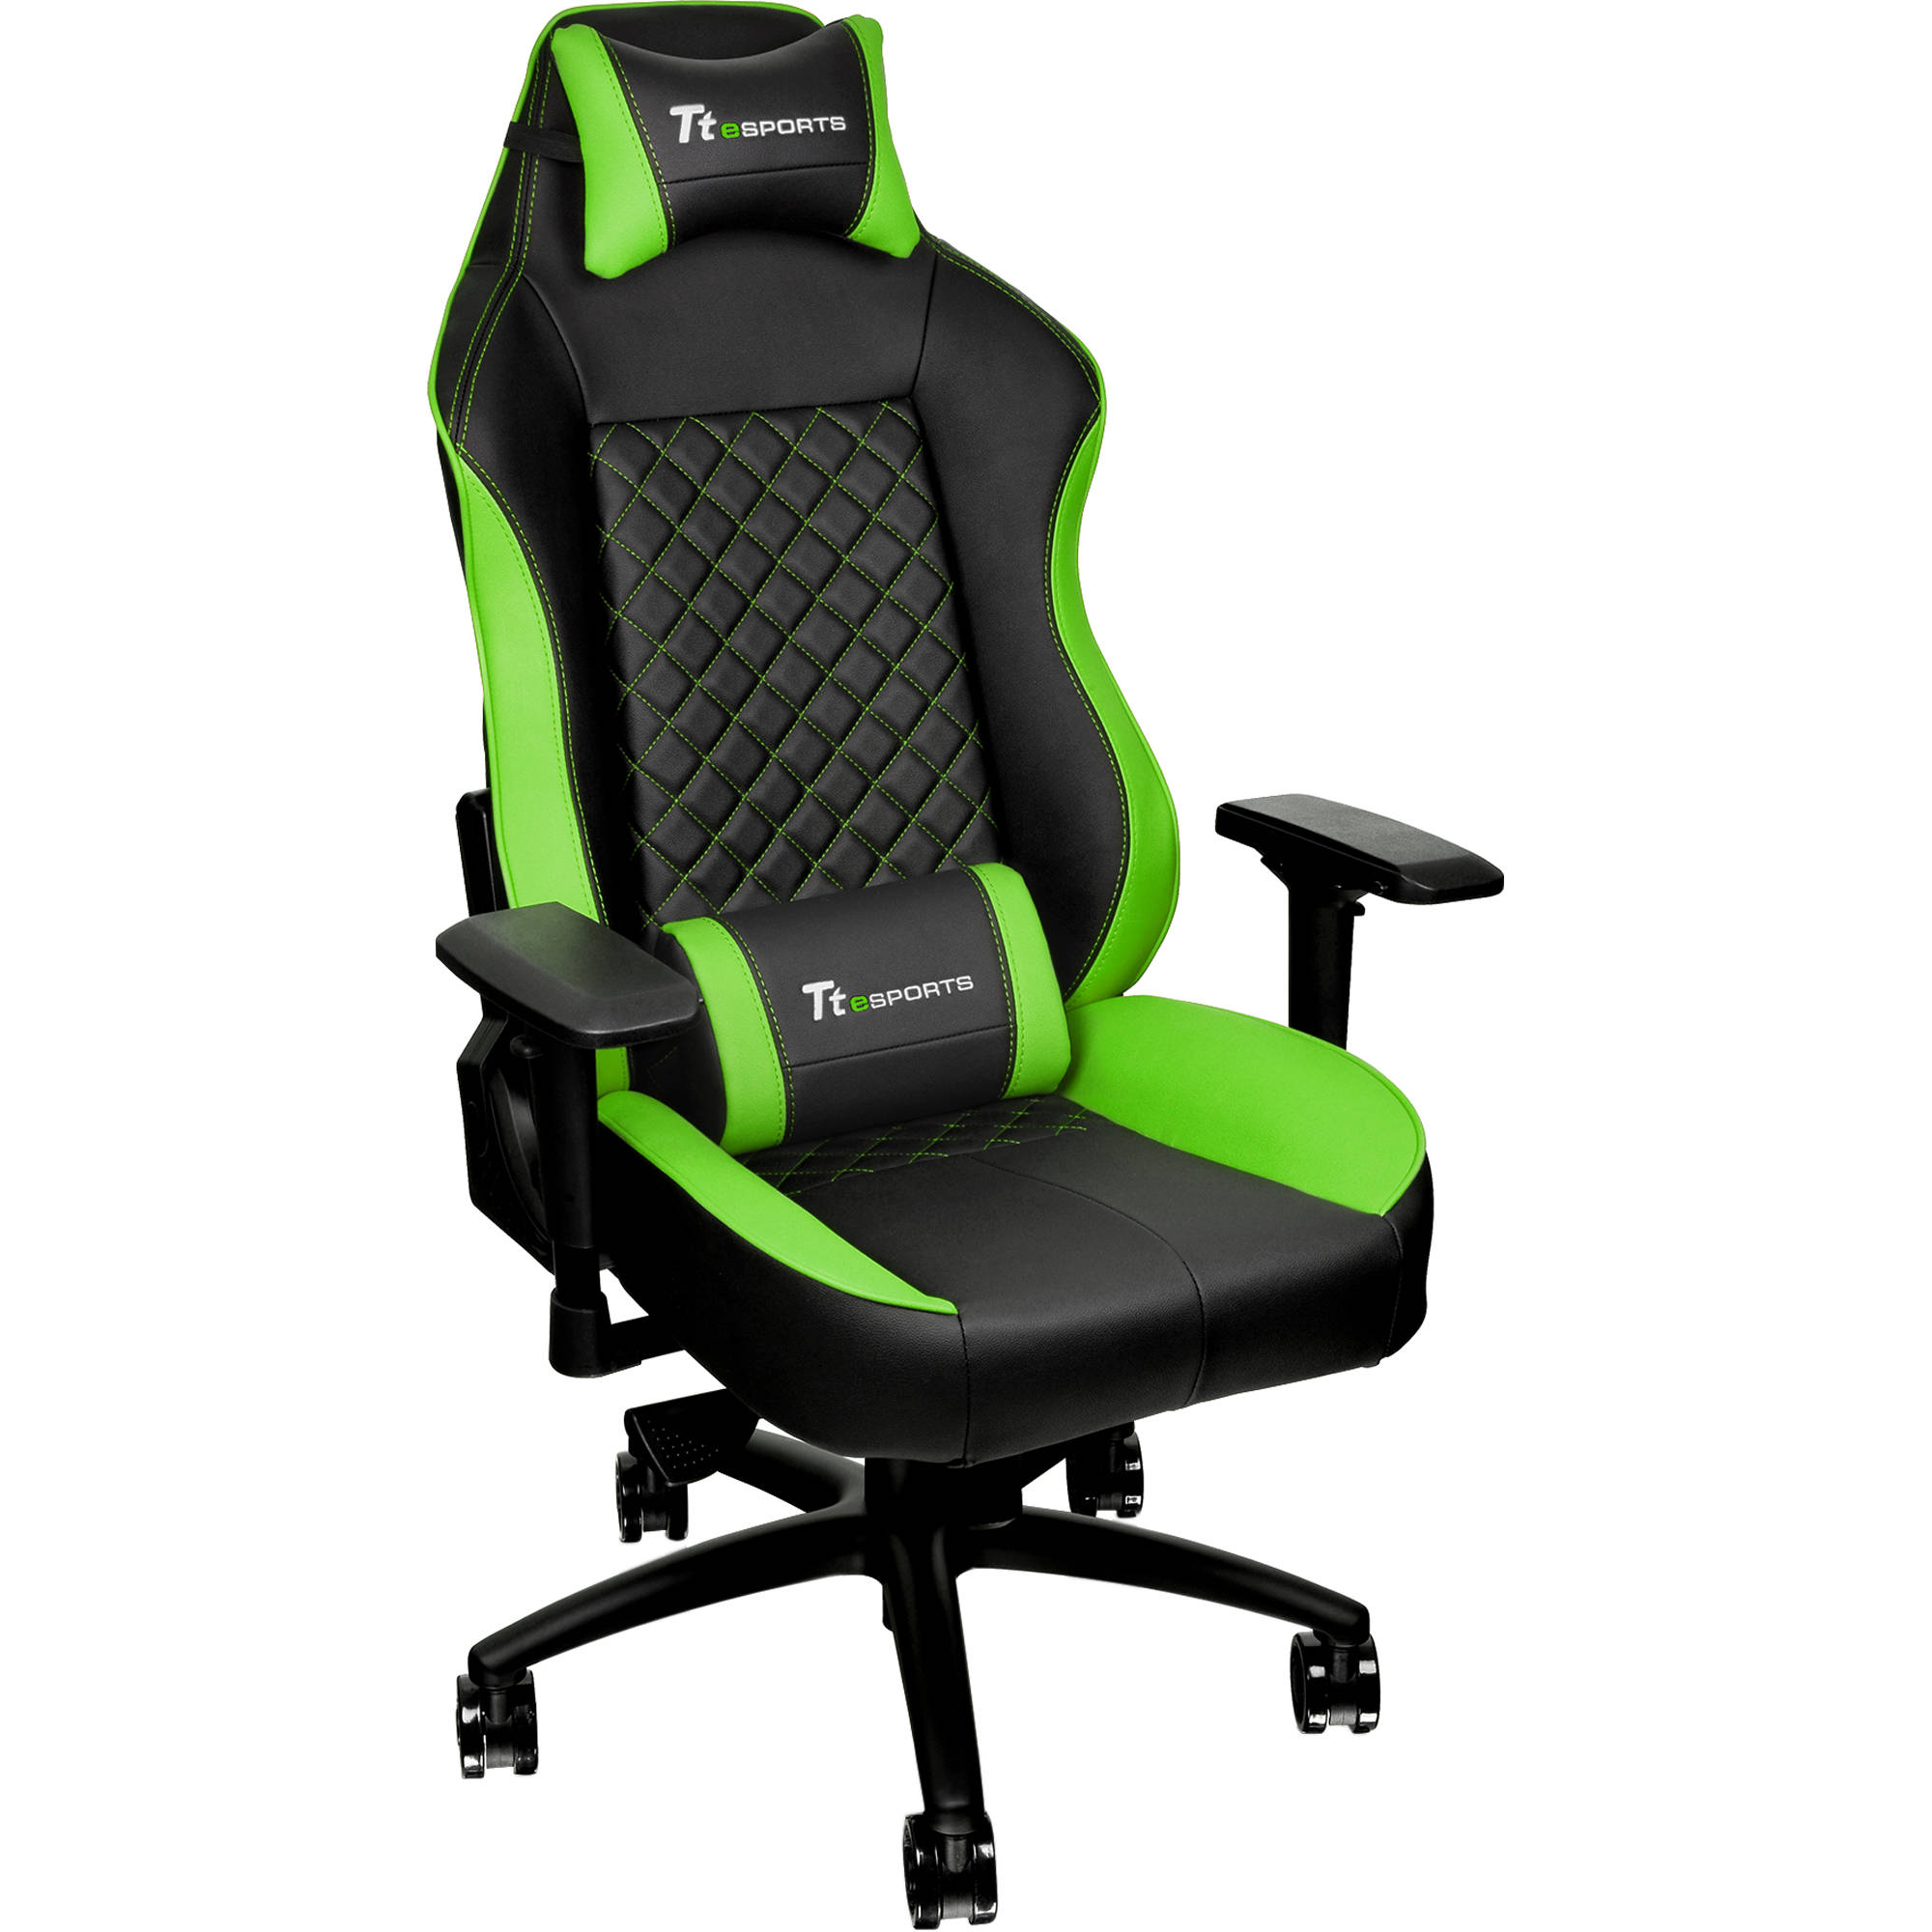 Gaming Gt Thermaltake Tt Esports Comfort C500 Chair dQCthrxs